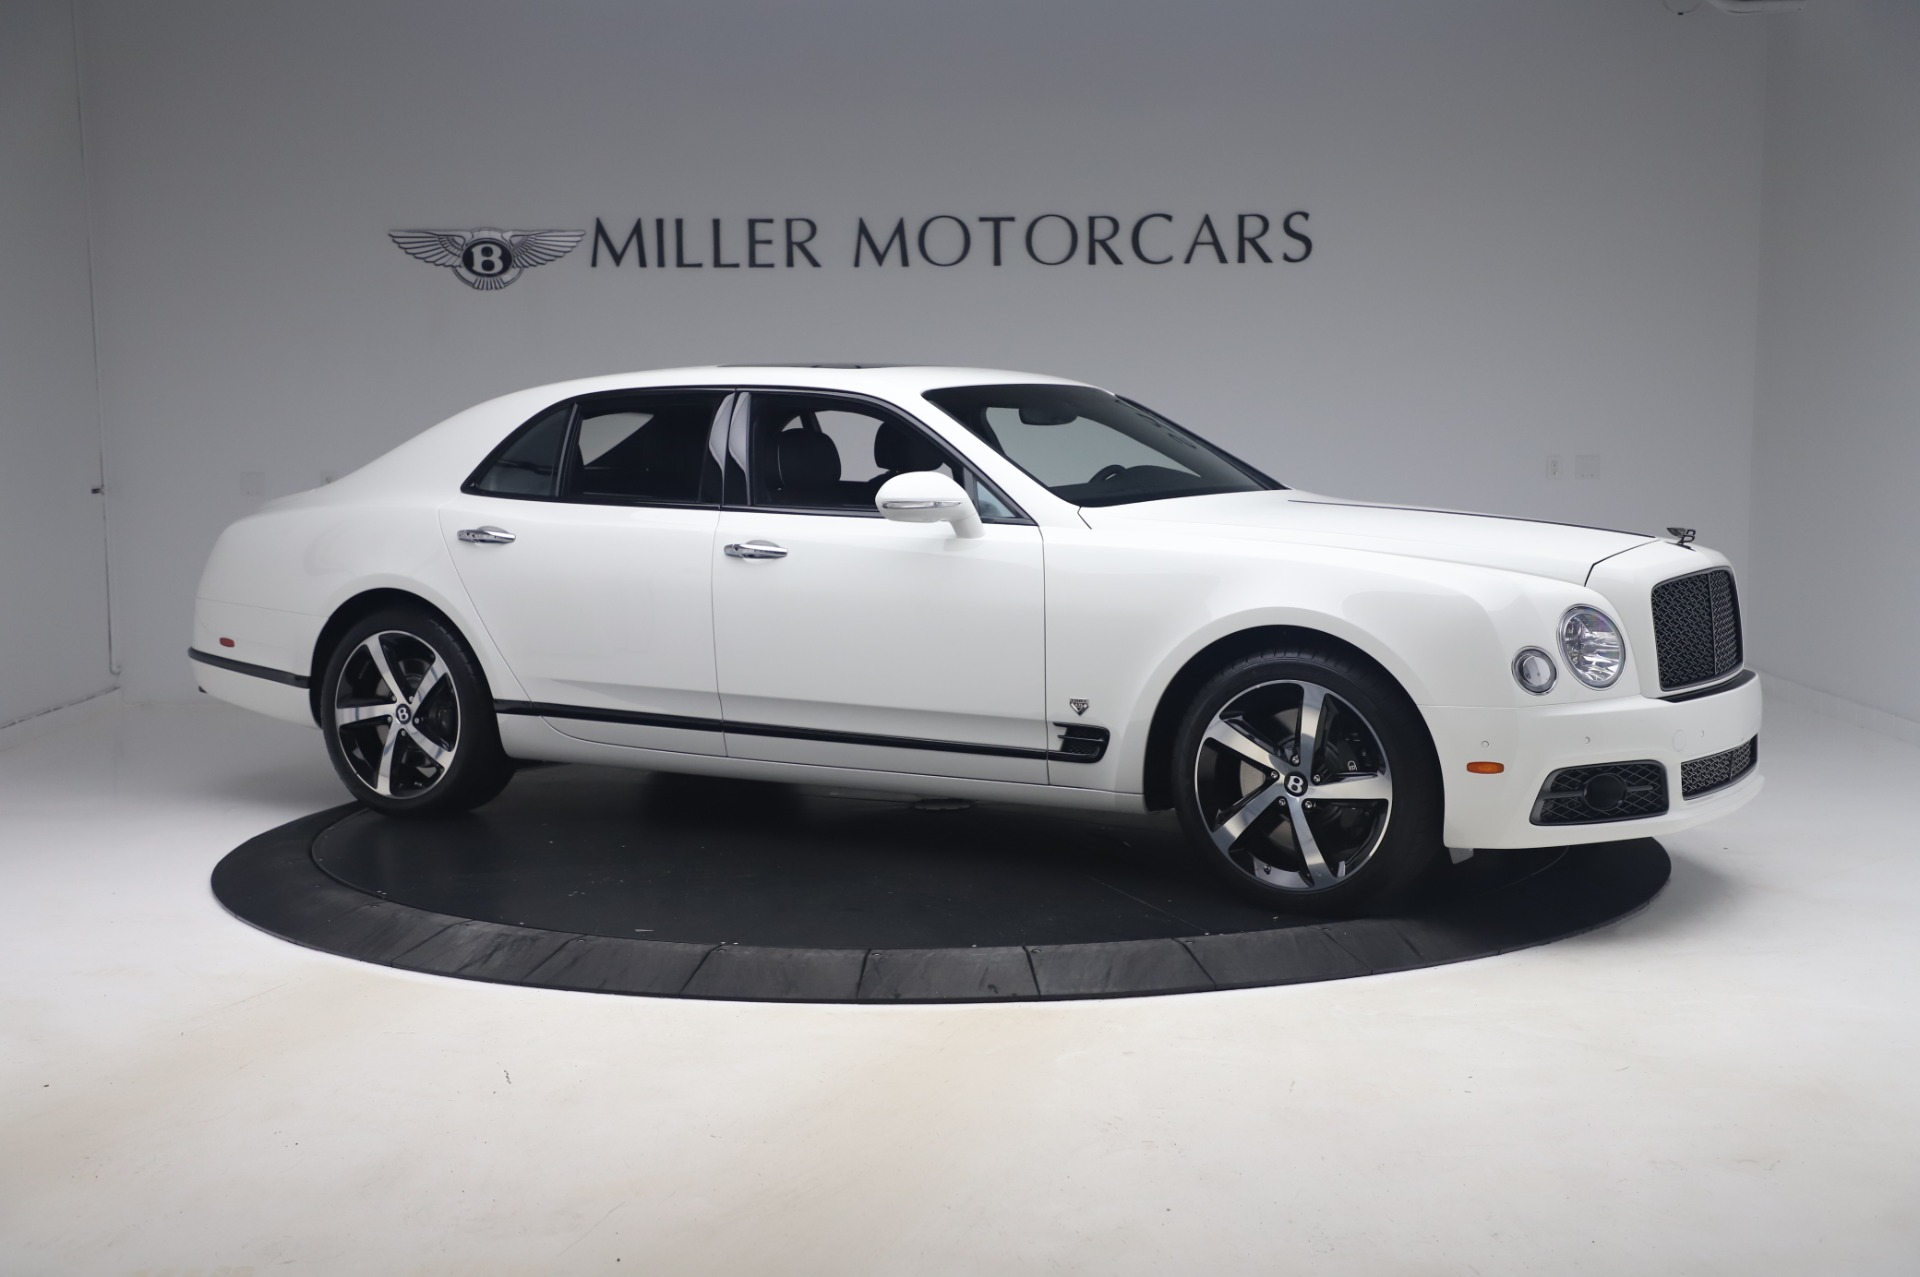 New 2020 Bentley Mulsanne 6 75 Edition By Mulliner For Sale 423 065 Miller Motorcars Stock B1521